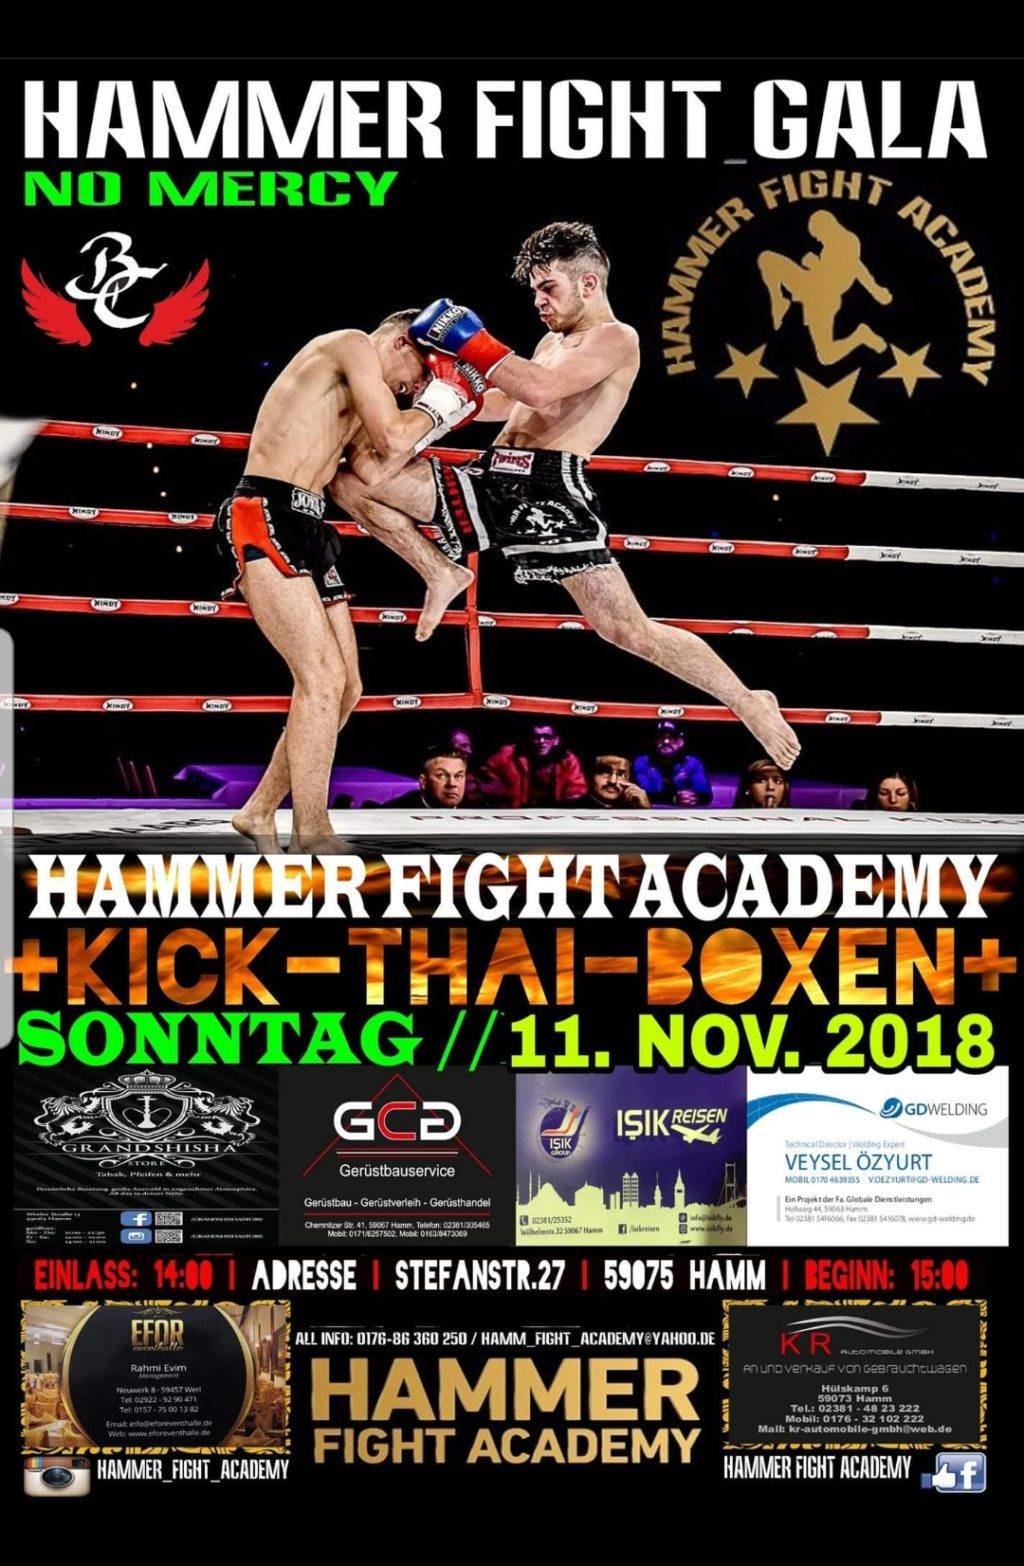 SmartSelect 20181011 003447 Facebook 1024x1566 - Hammer Fight Gala 11.11.2018